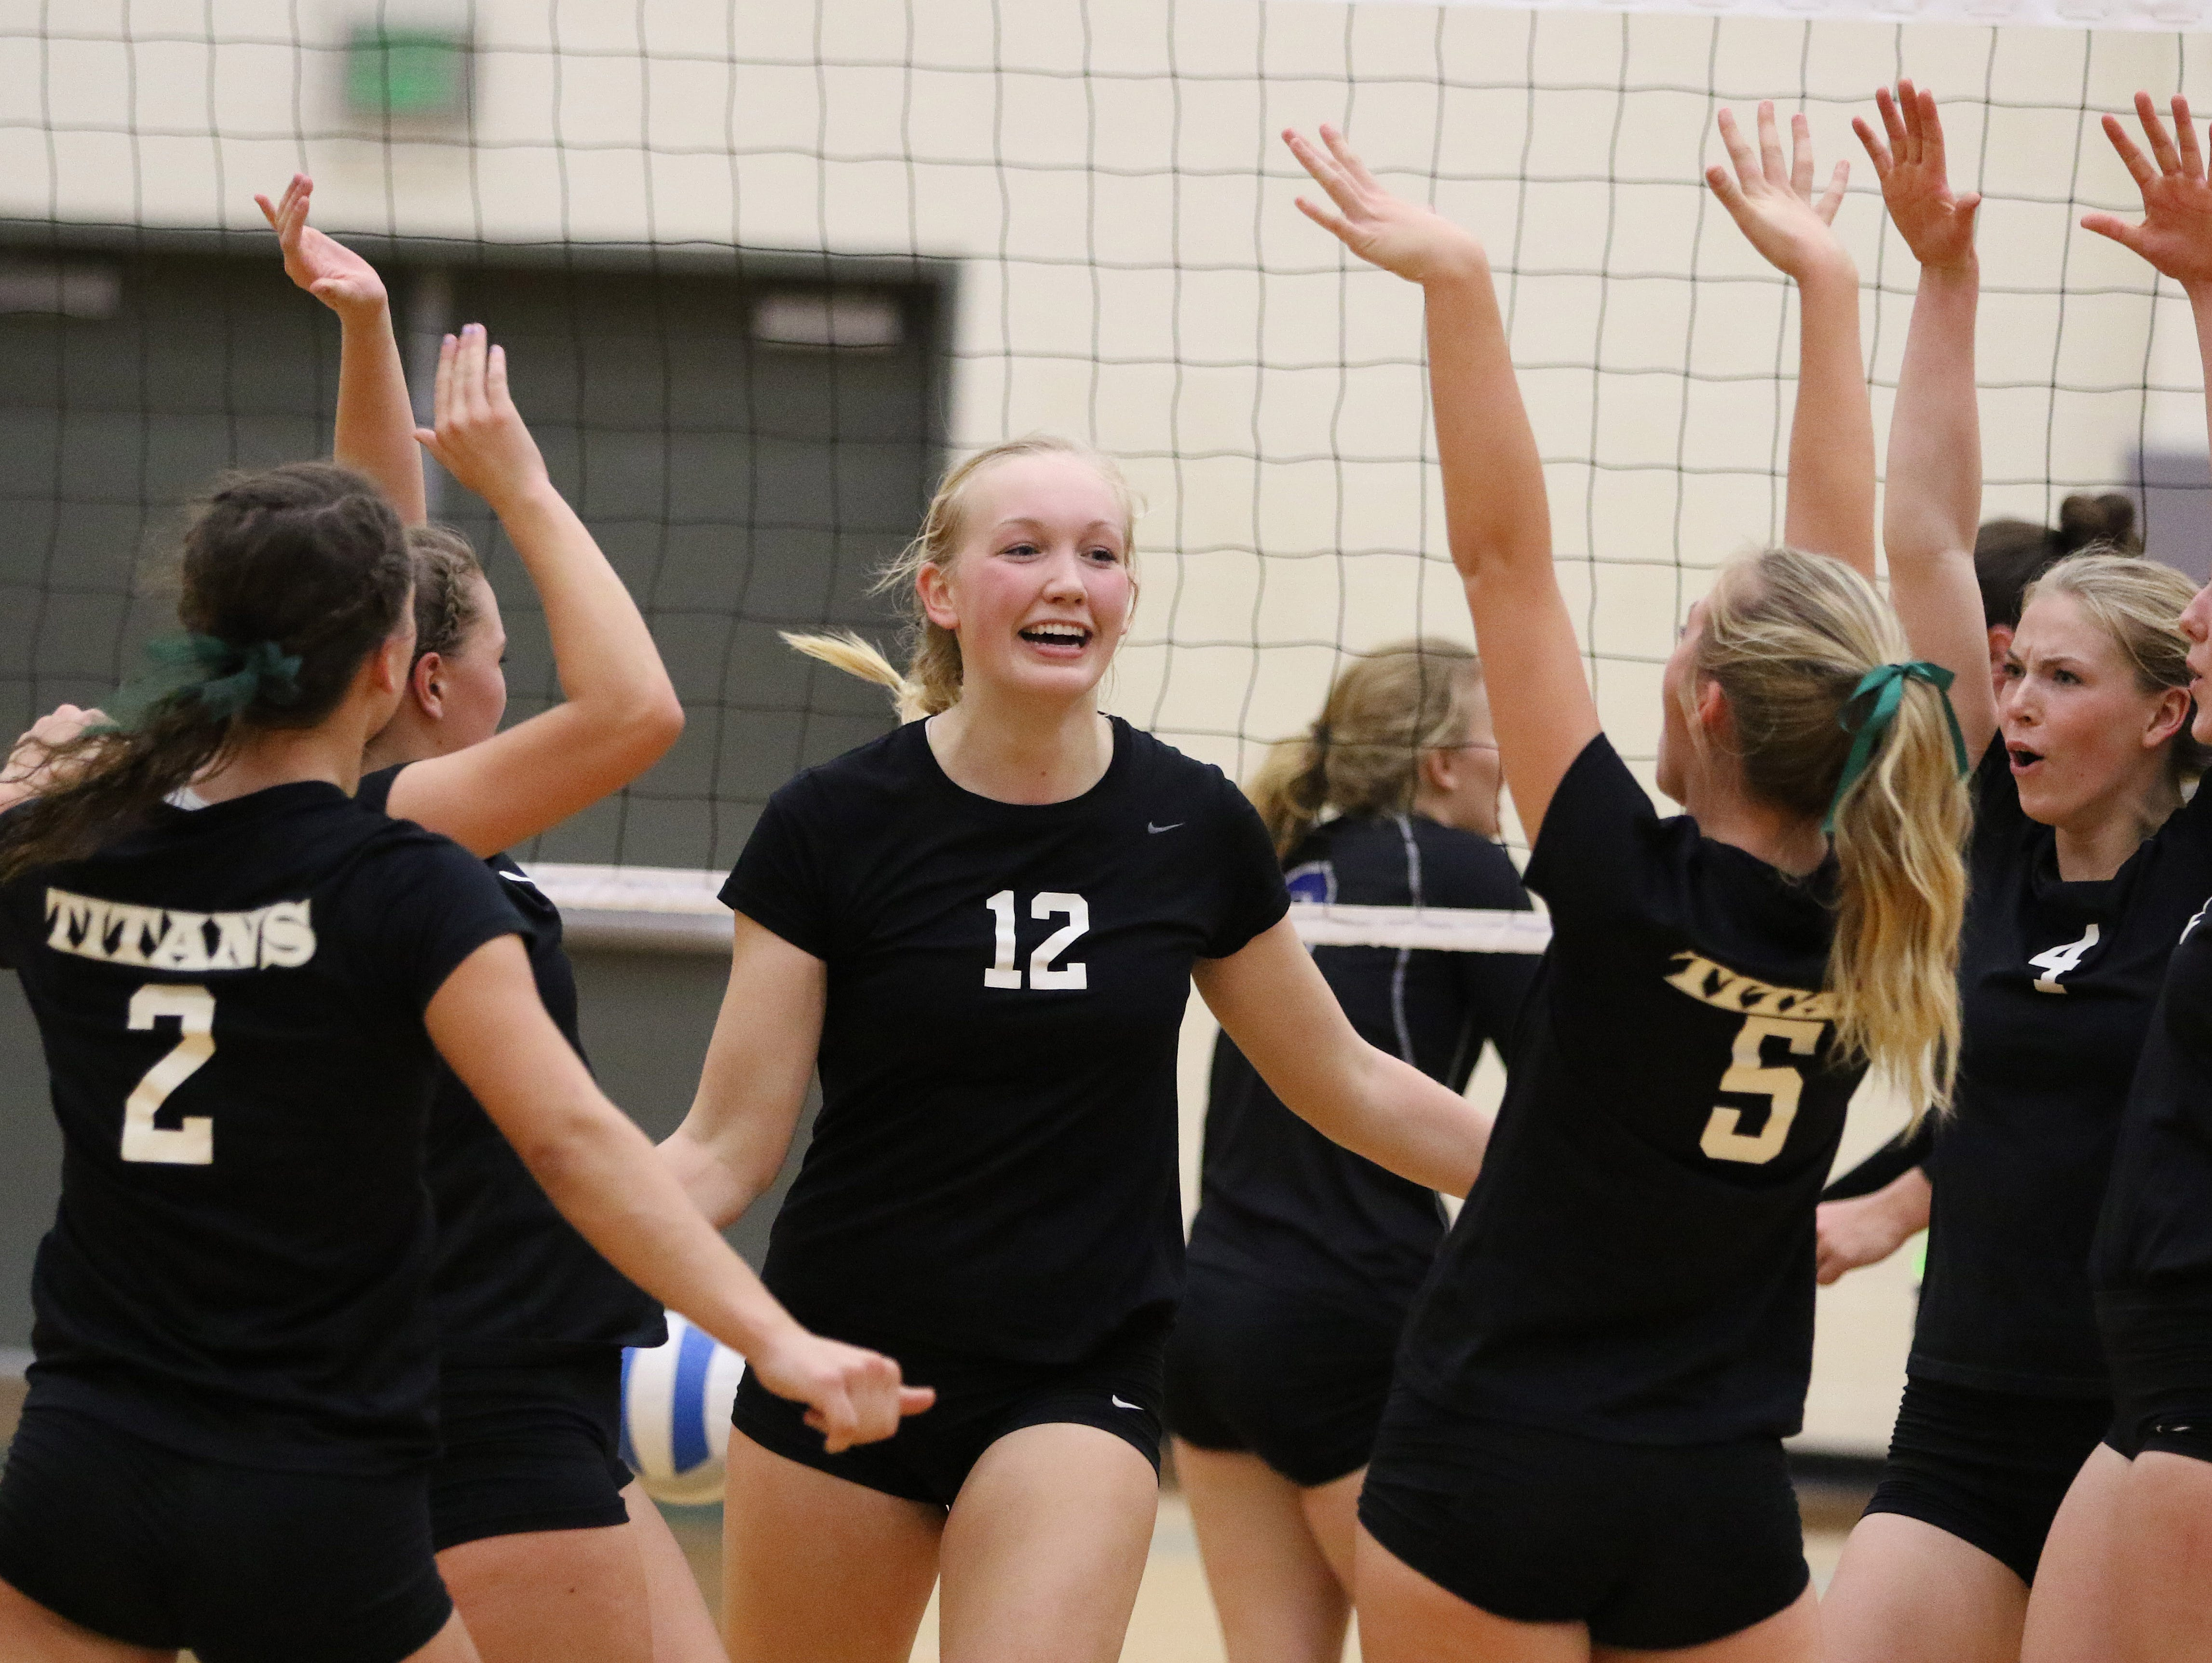 West Salem's Paige Whipple (No. 12) celebrates a point against McNary in the Greater Valley Conference finale Thursday, Oct. 22, 2015.